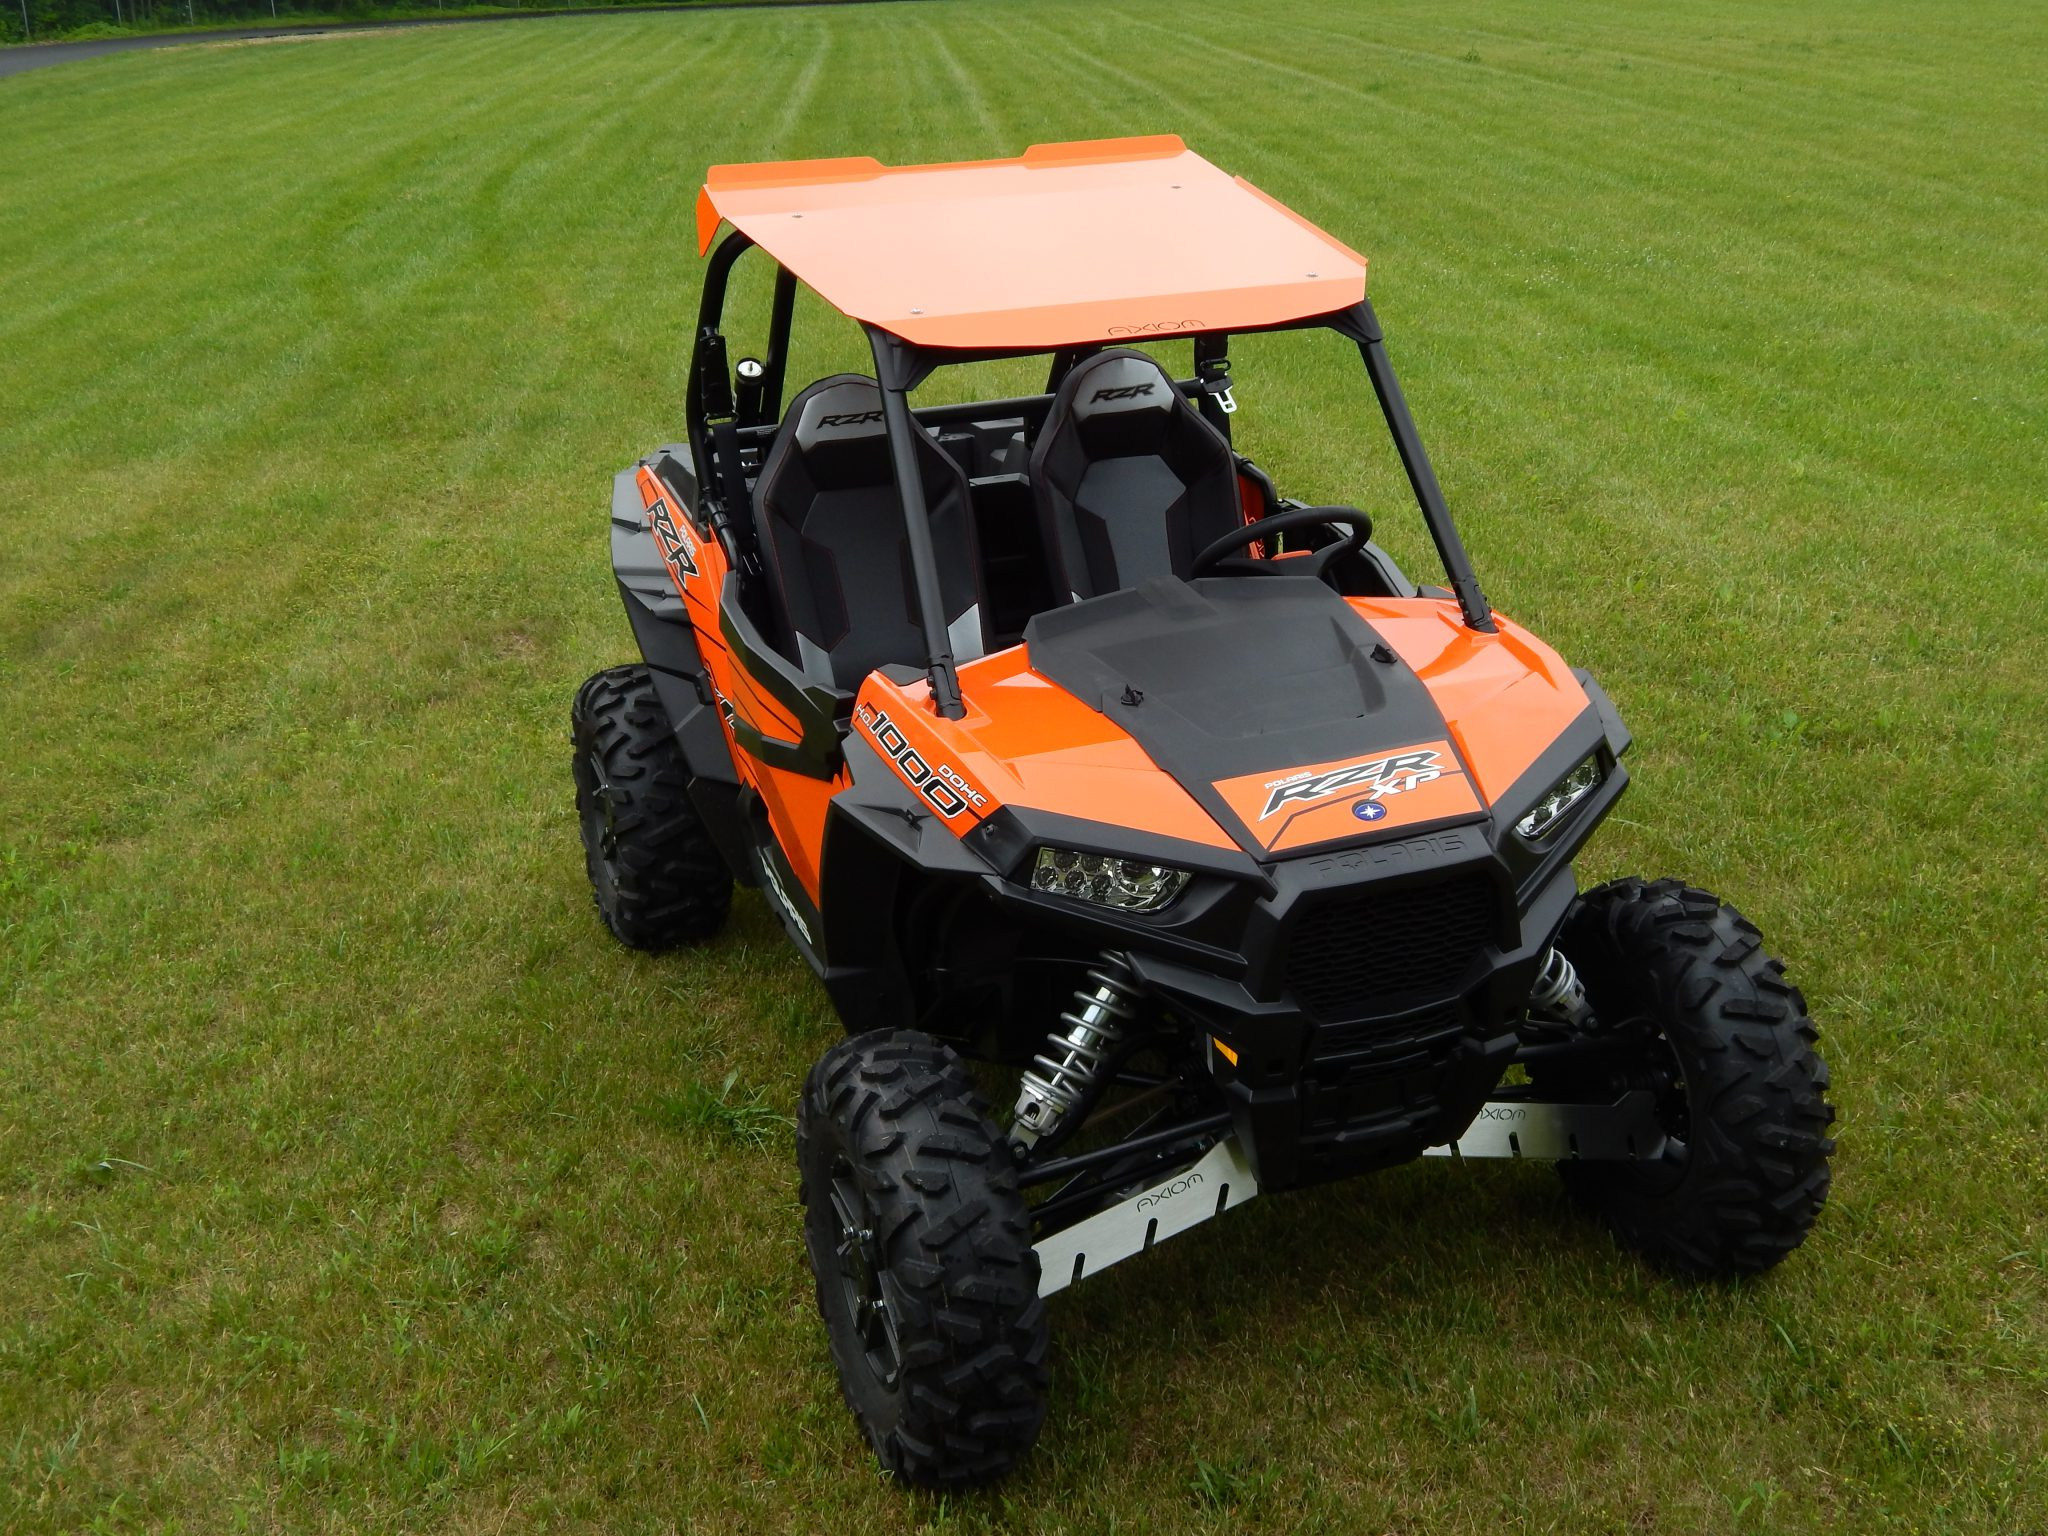 Axiom Roof 2 Seater Polaris Rzr 900 Xc Axiom Side By Side